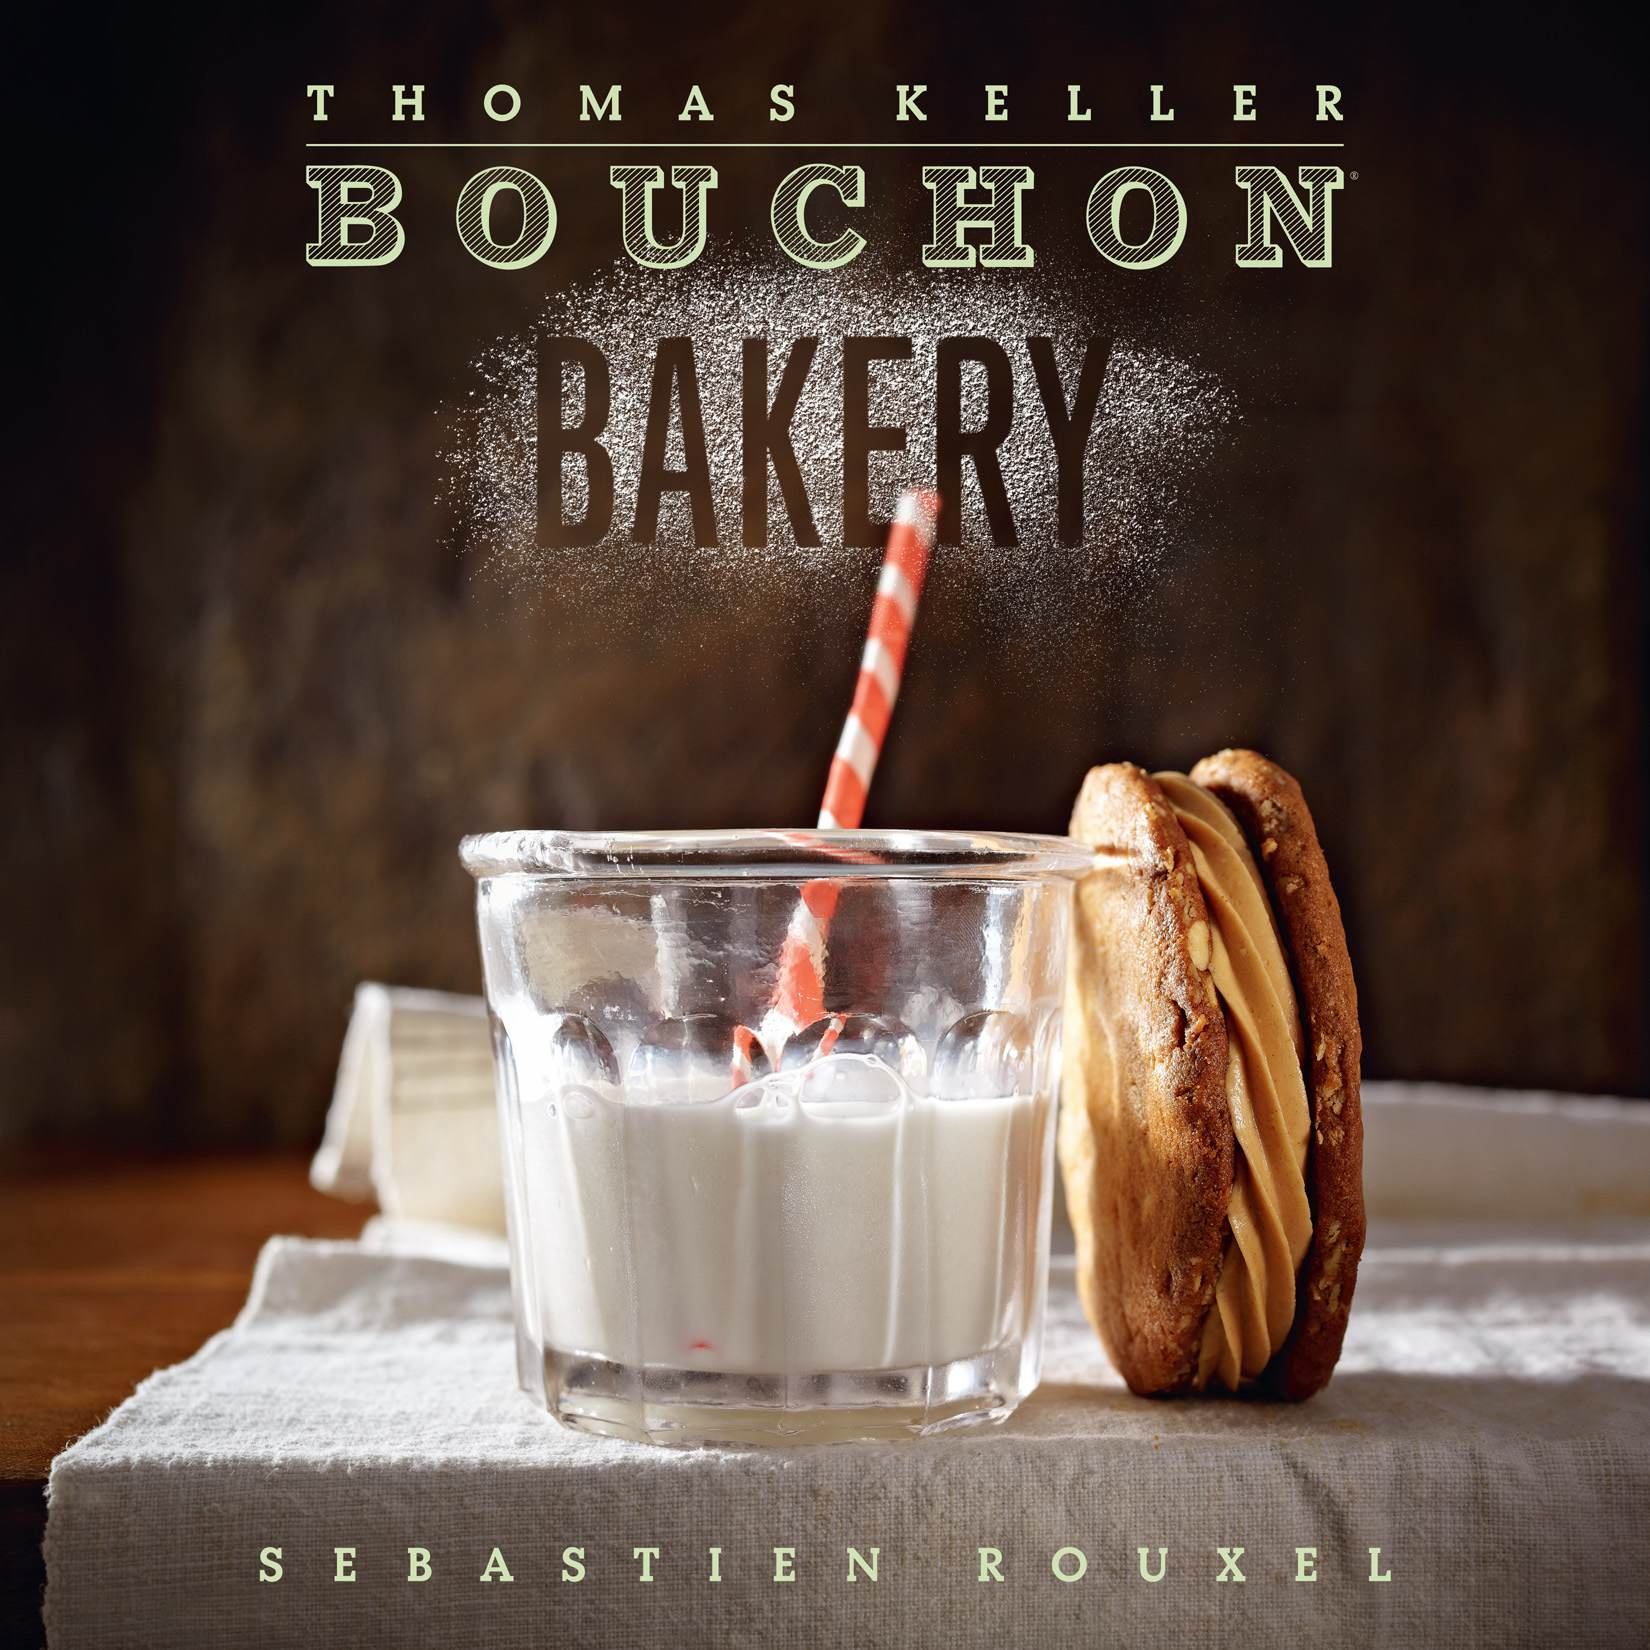 bouchon-bakery-book-jacket.jpg